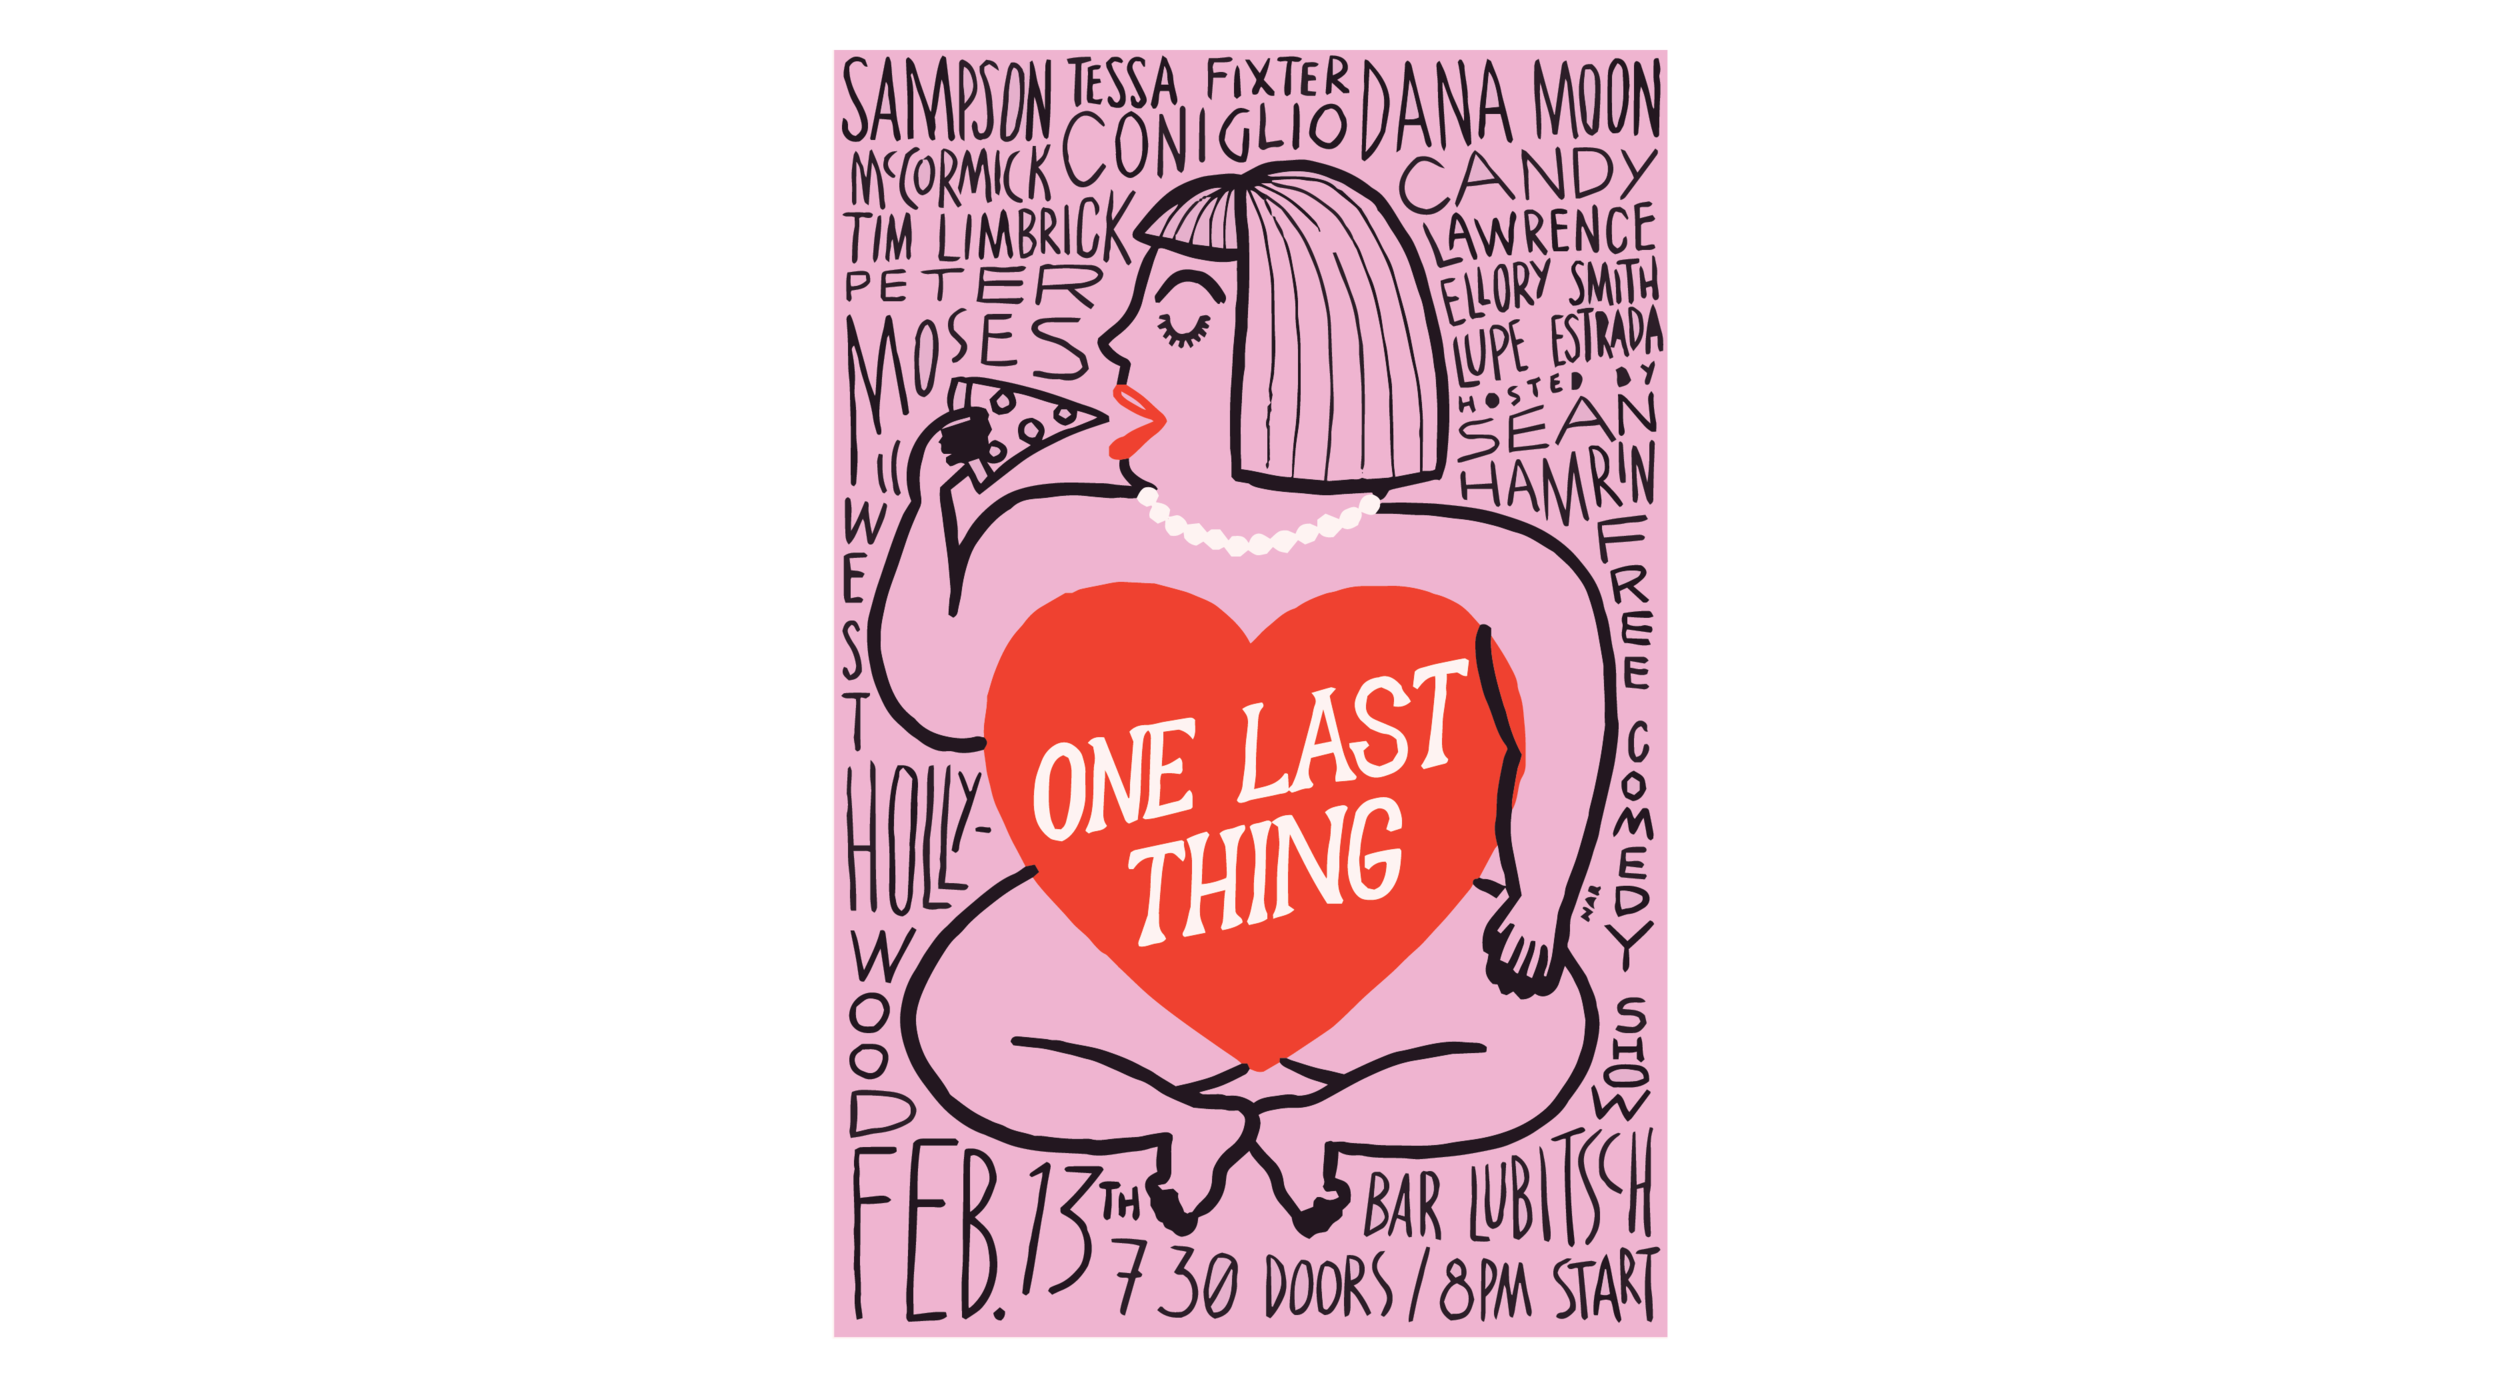 Poster illustration for One Last Thing comedy based in Las